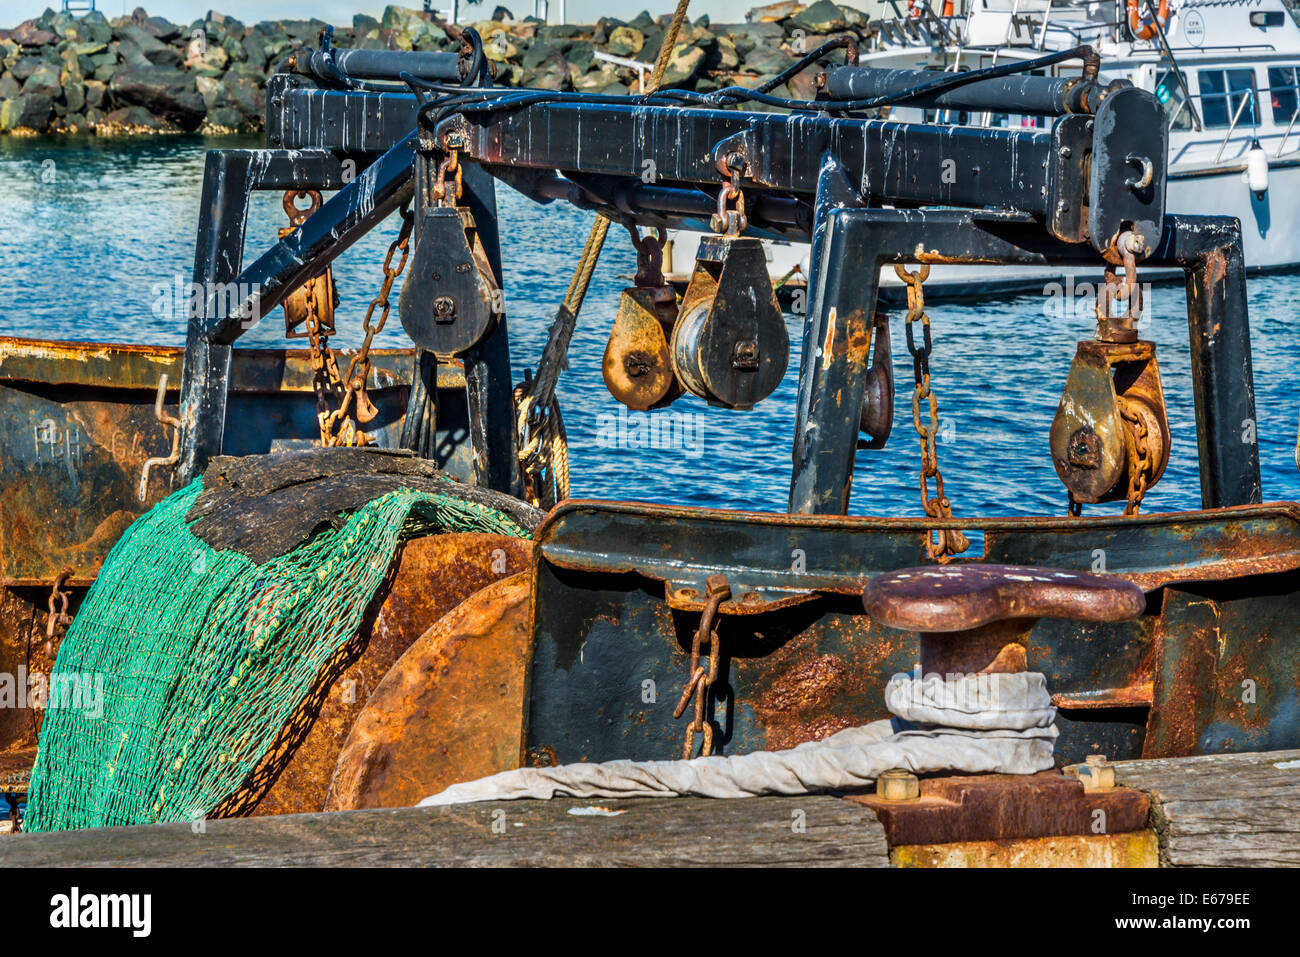 Fishing boat with heavy fishing equipment rusted and for How to get free fishing gear